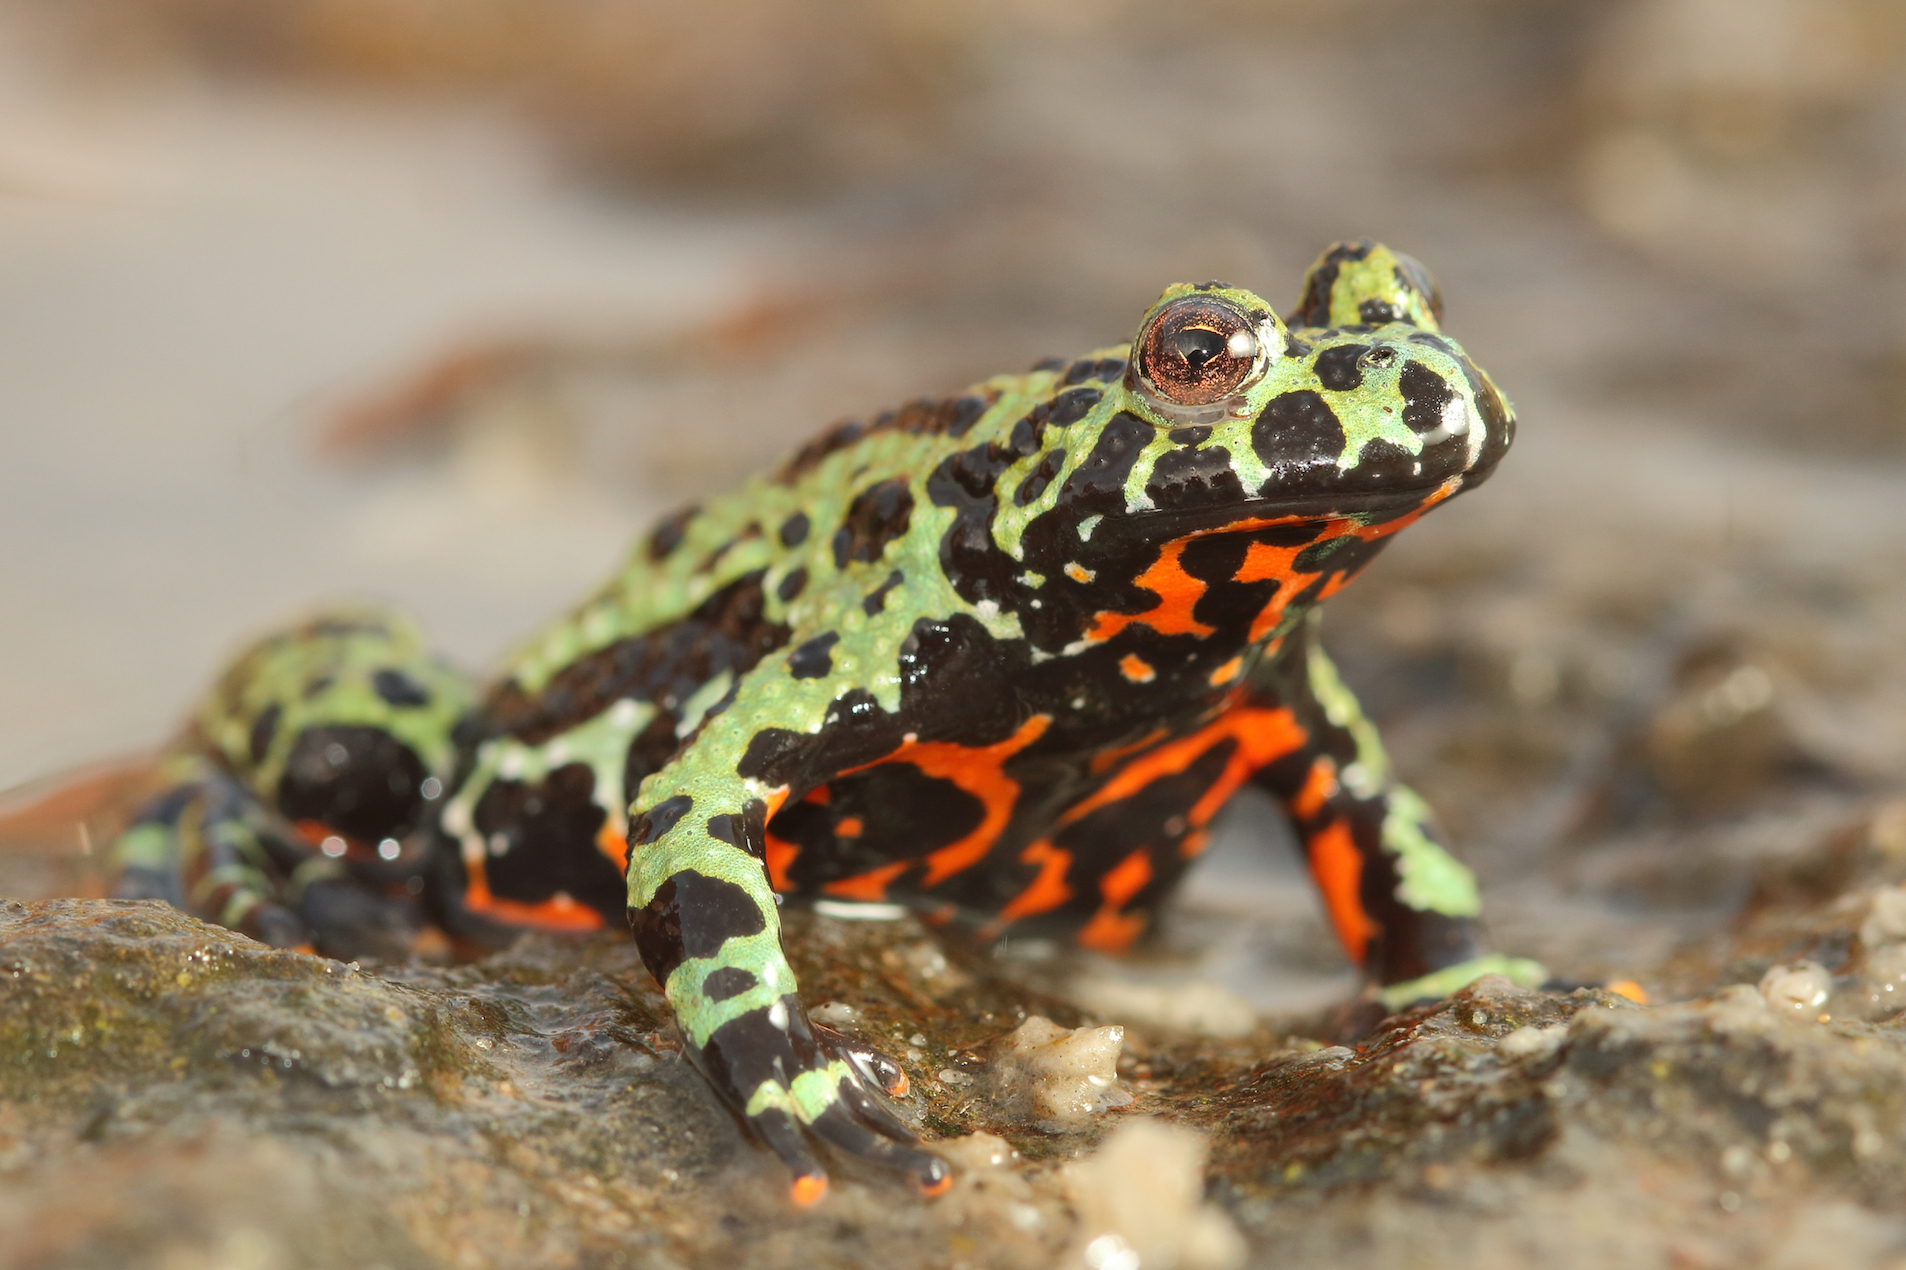 A deadly fungus – known as chytrid fungus (Batrachochytrium dendrobatidis) – has been devastating amphibian populations around the world for years.